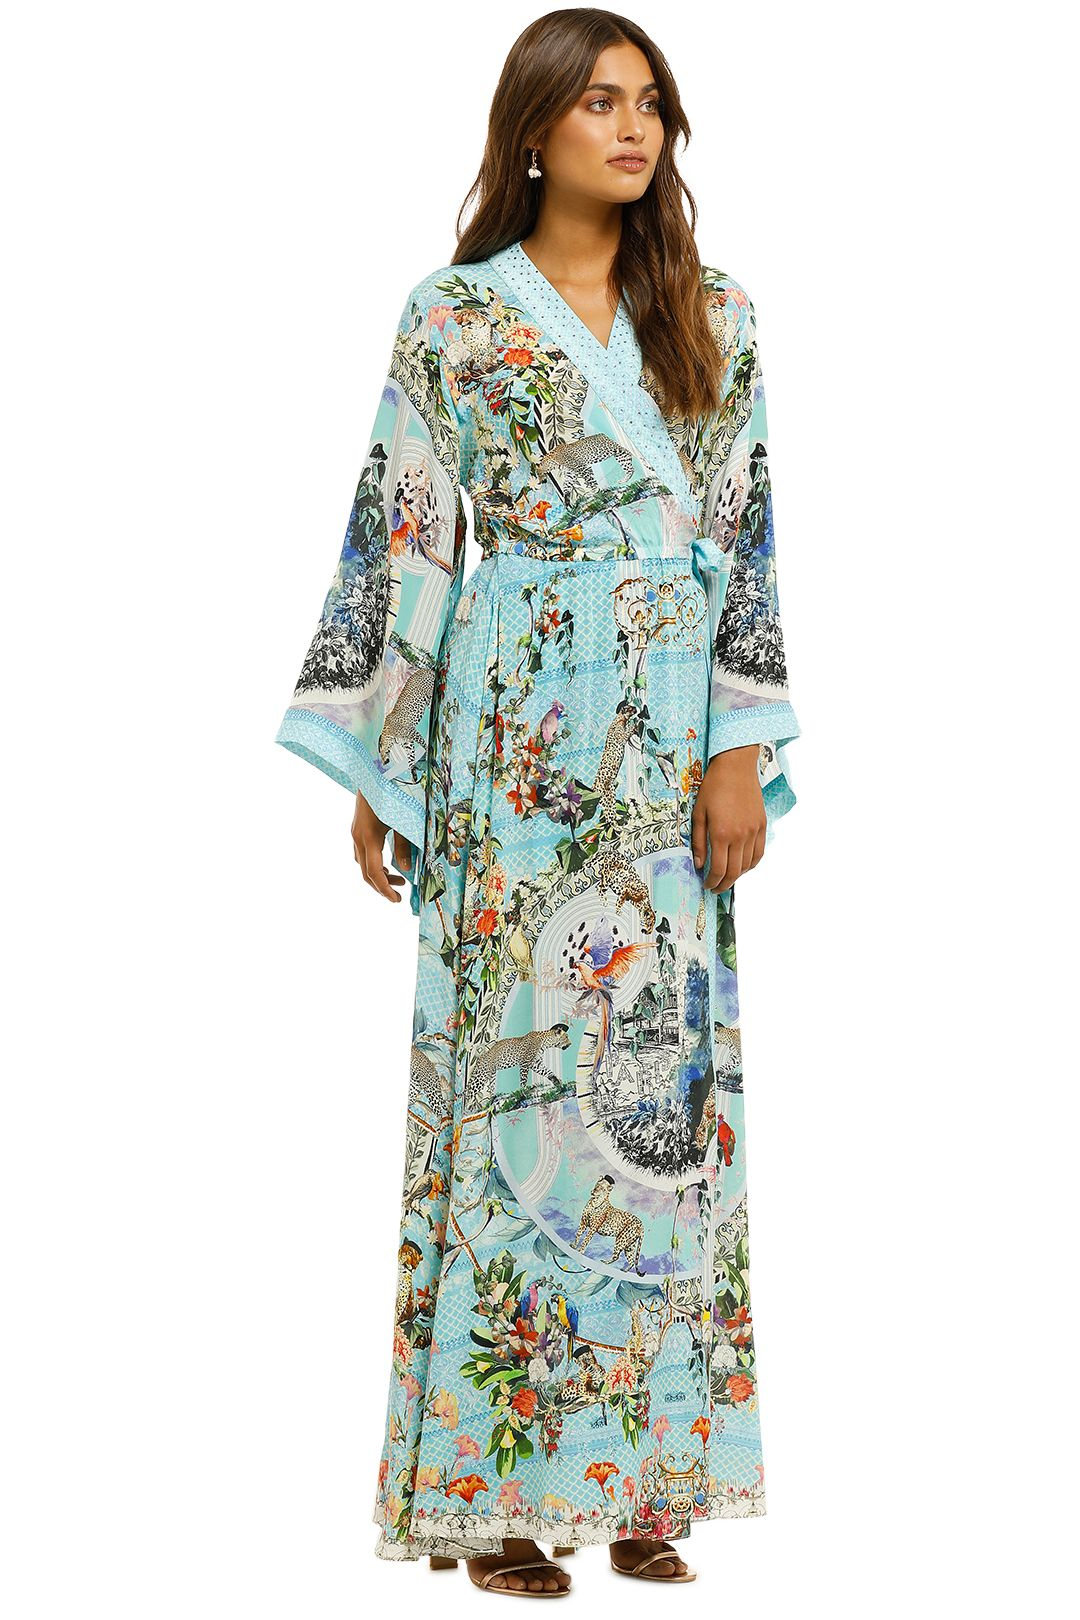 Camilla-Kimono-Wrap-Dress-Girl-from-St-Tropez-Side